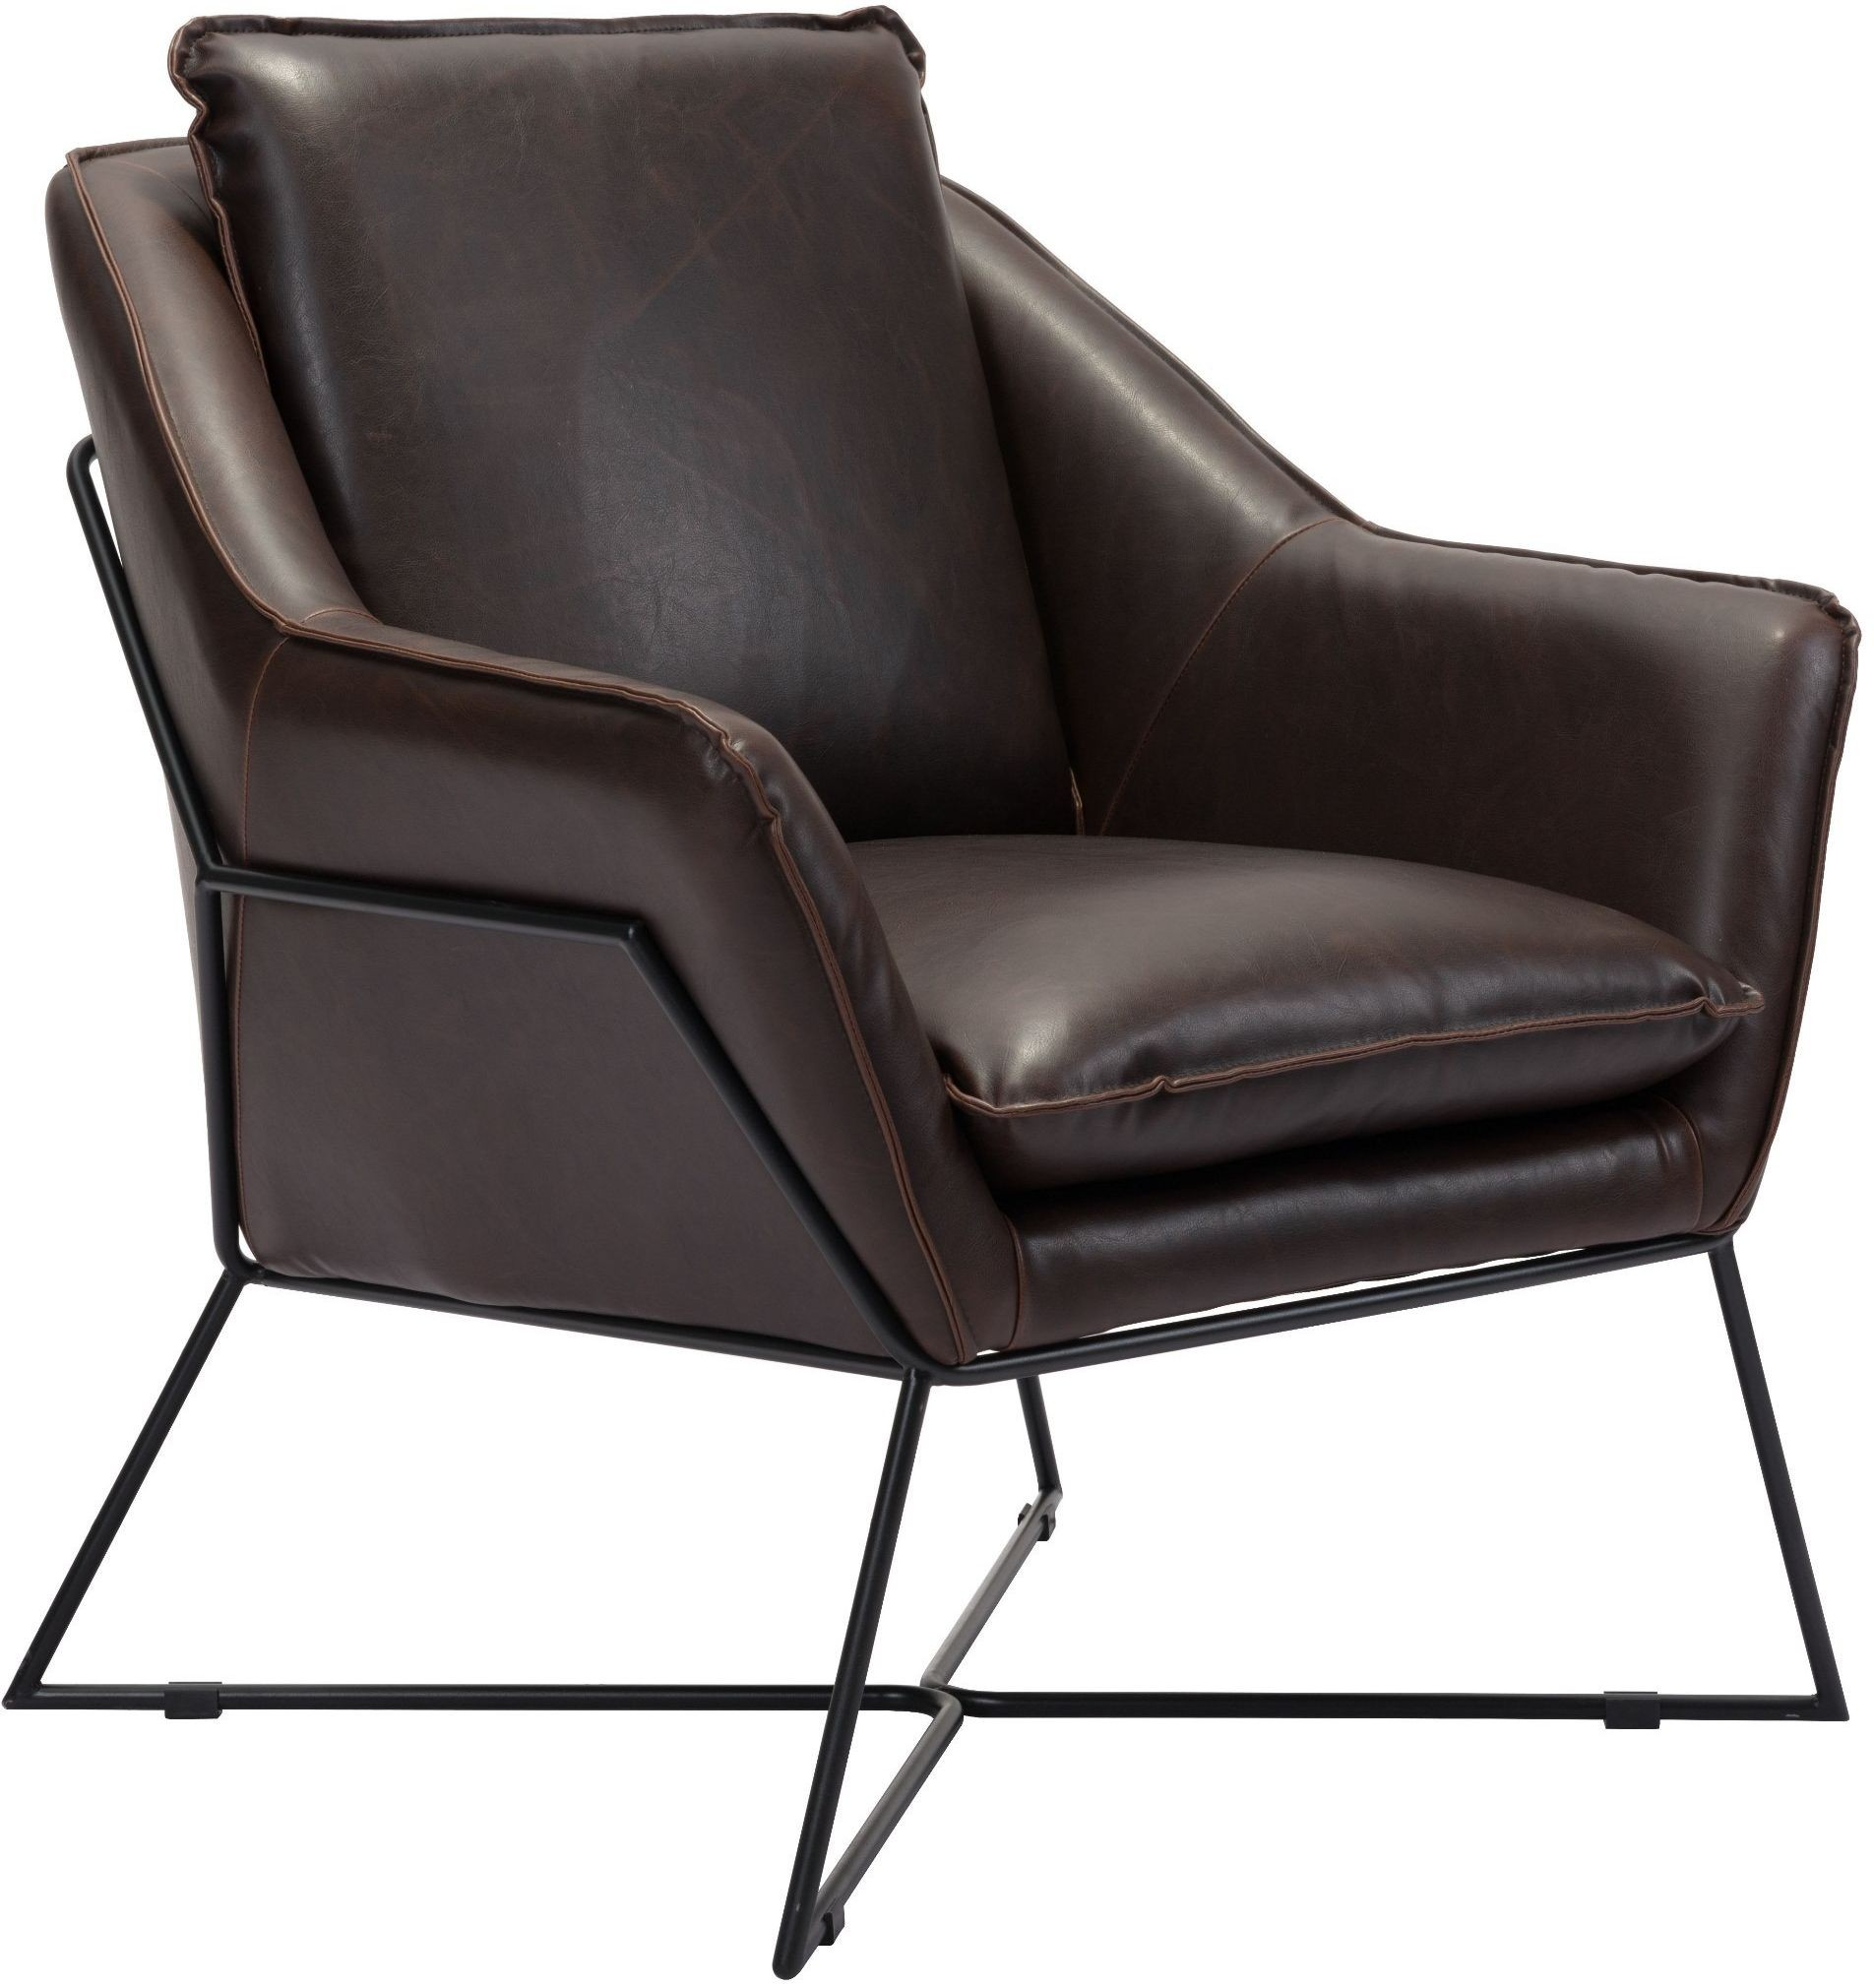 Lincoln Brown Lounge Chair From Zuo Coleman Furniture